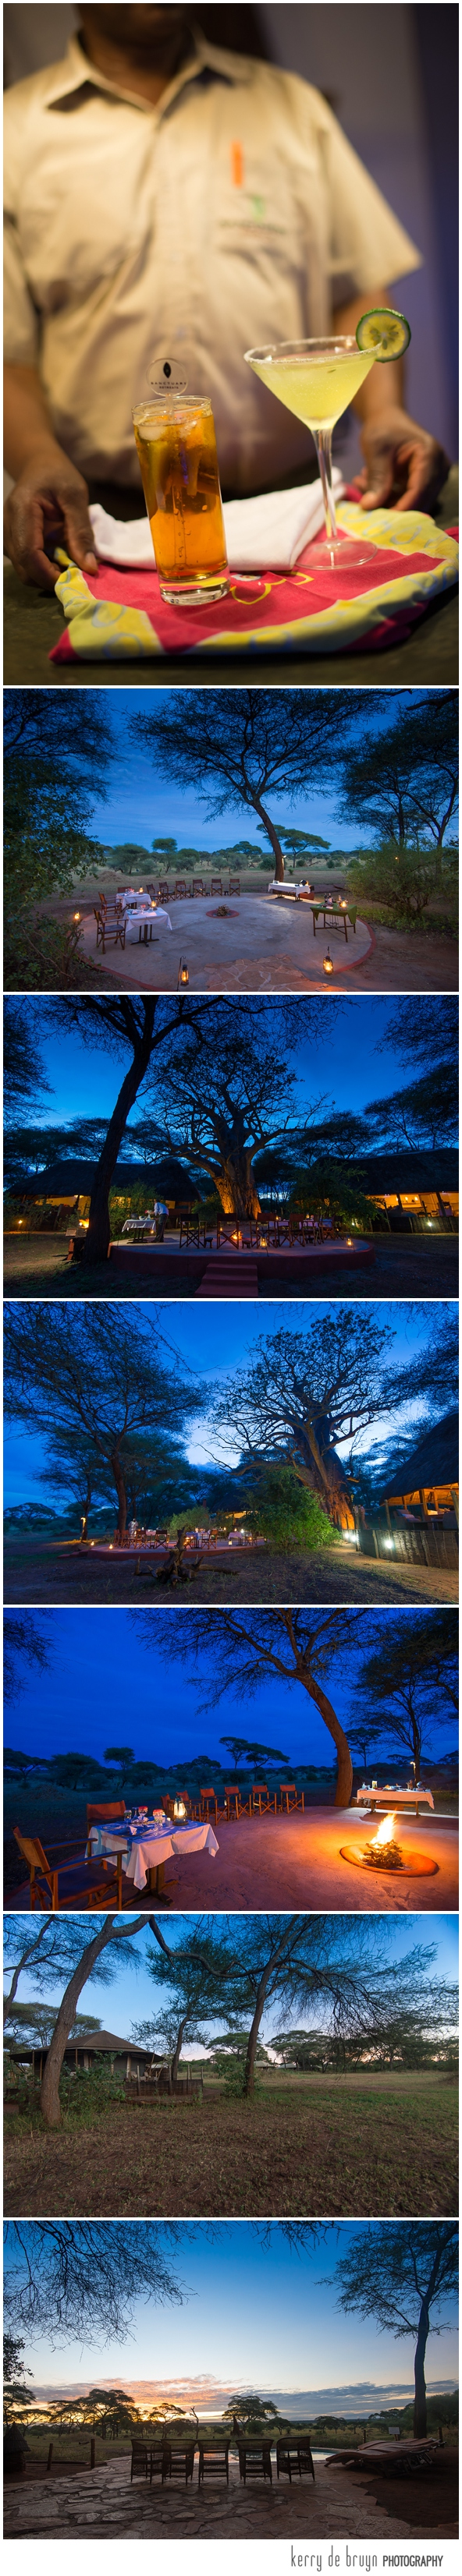 Sanctuary Retreats Swala Tarangire